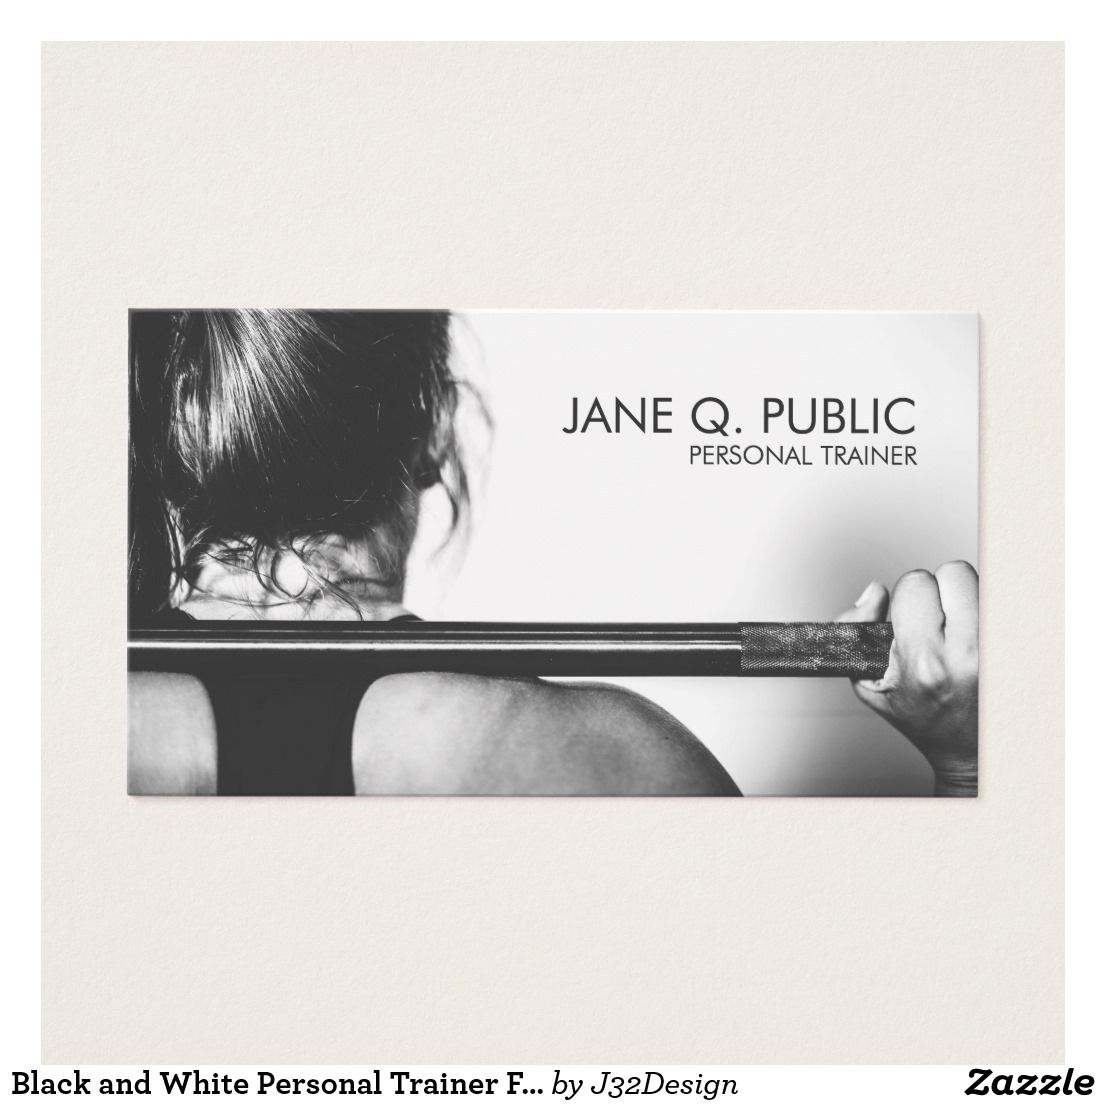 Black and White Personal Trainer Fitness Training Business Card ...